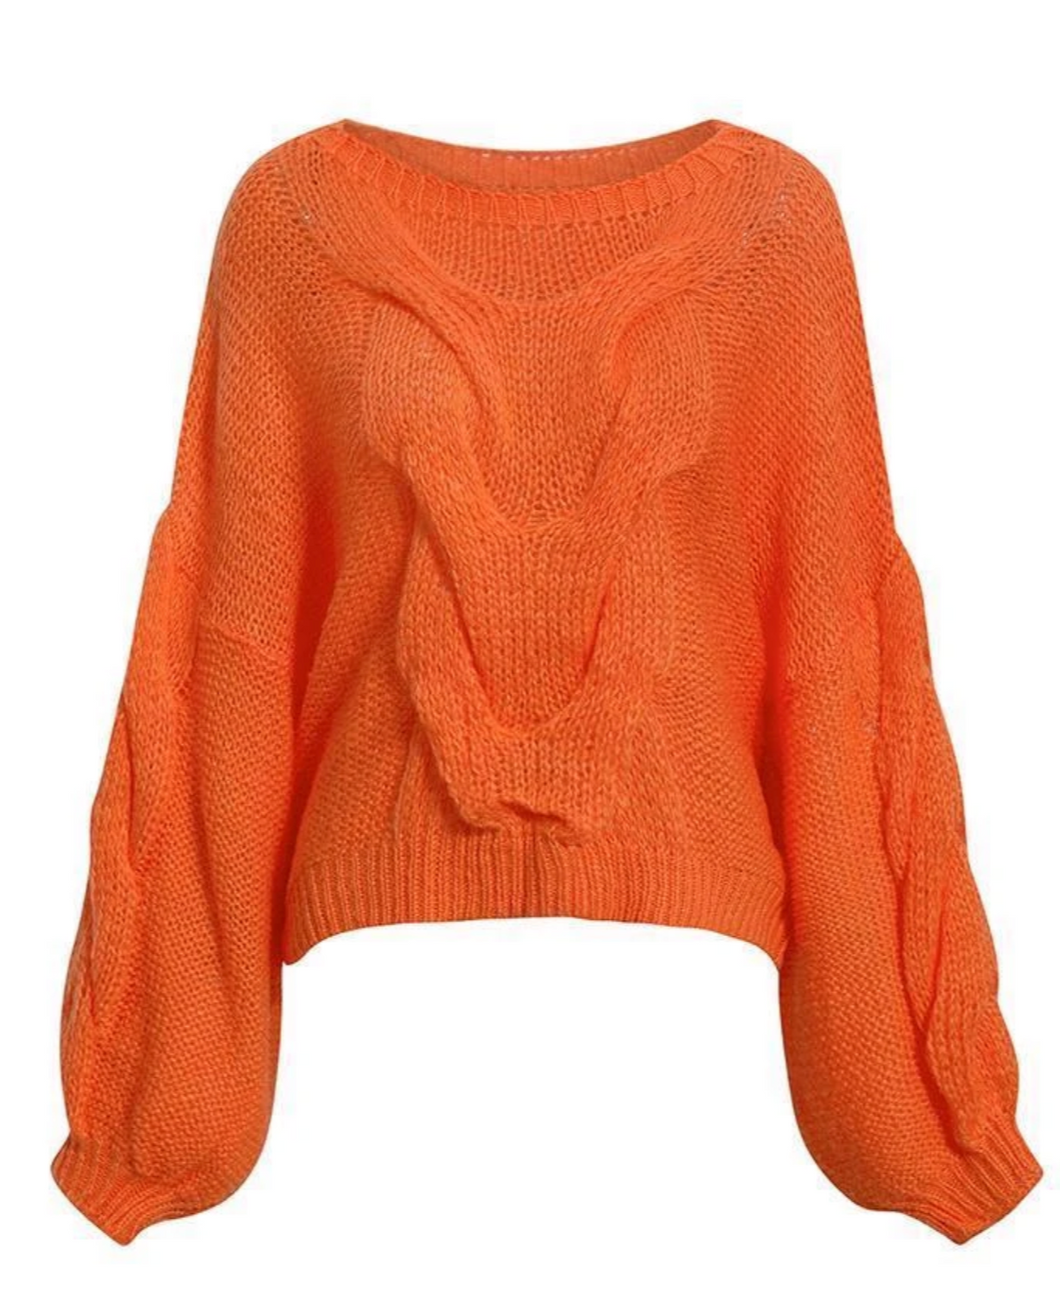 EYELASH KNITTED JUMPER